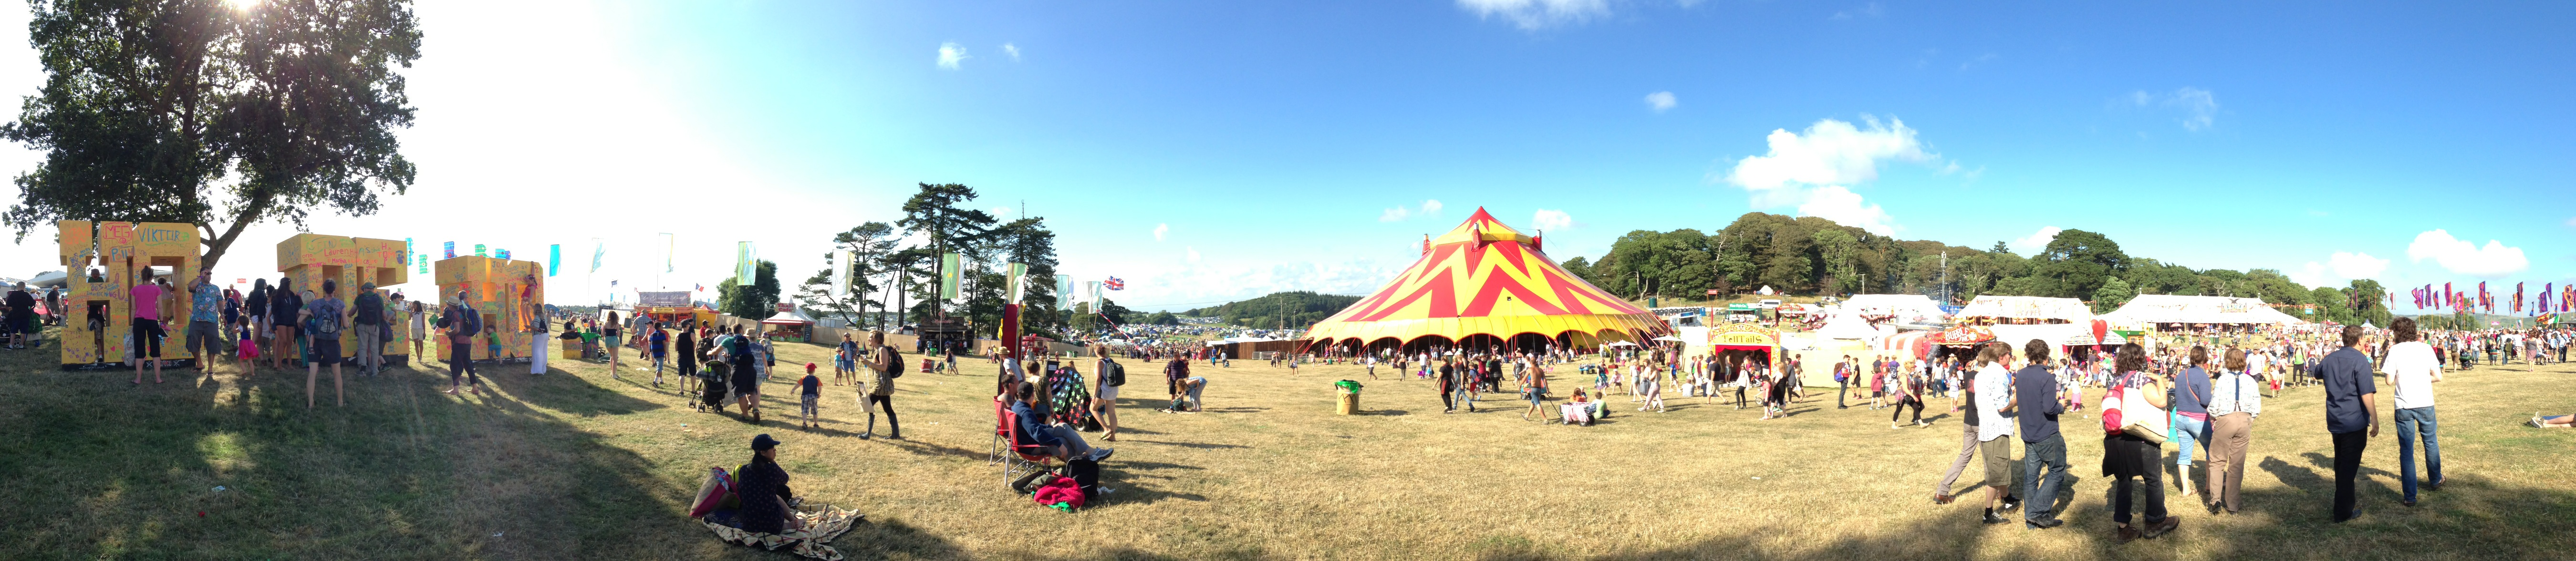 Camp Bestival Family Festival